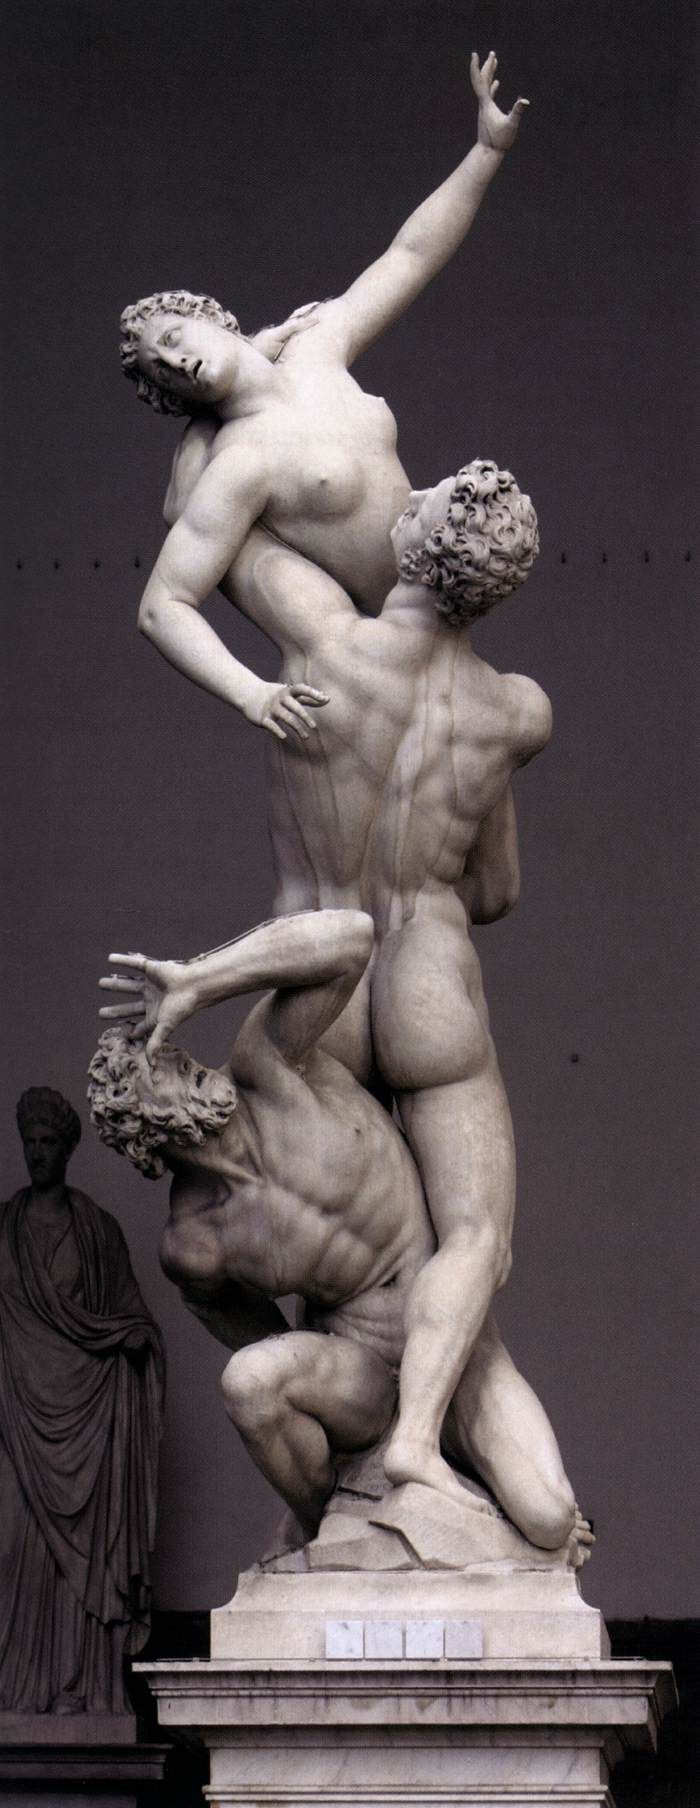 Giambologna, Rape of the Sabines  1581/ 1583  Marble, height 410 cm  Loggia dei Lanzi, Florence